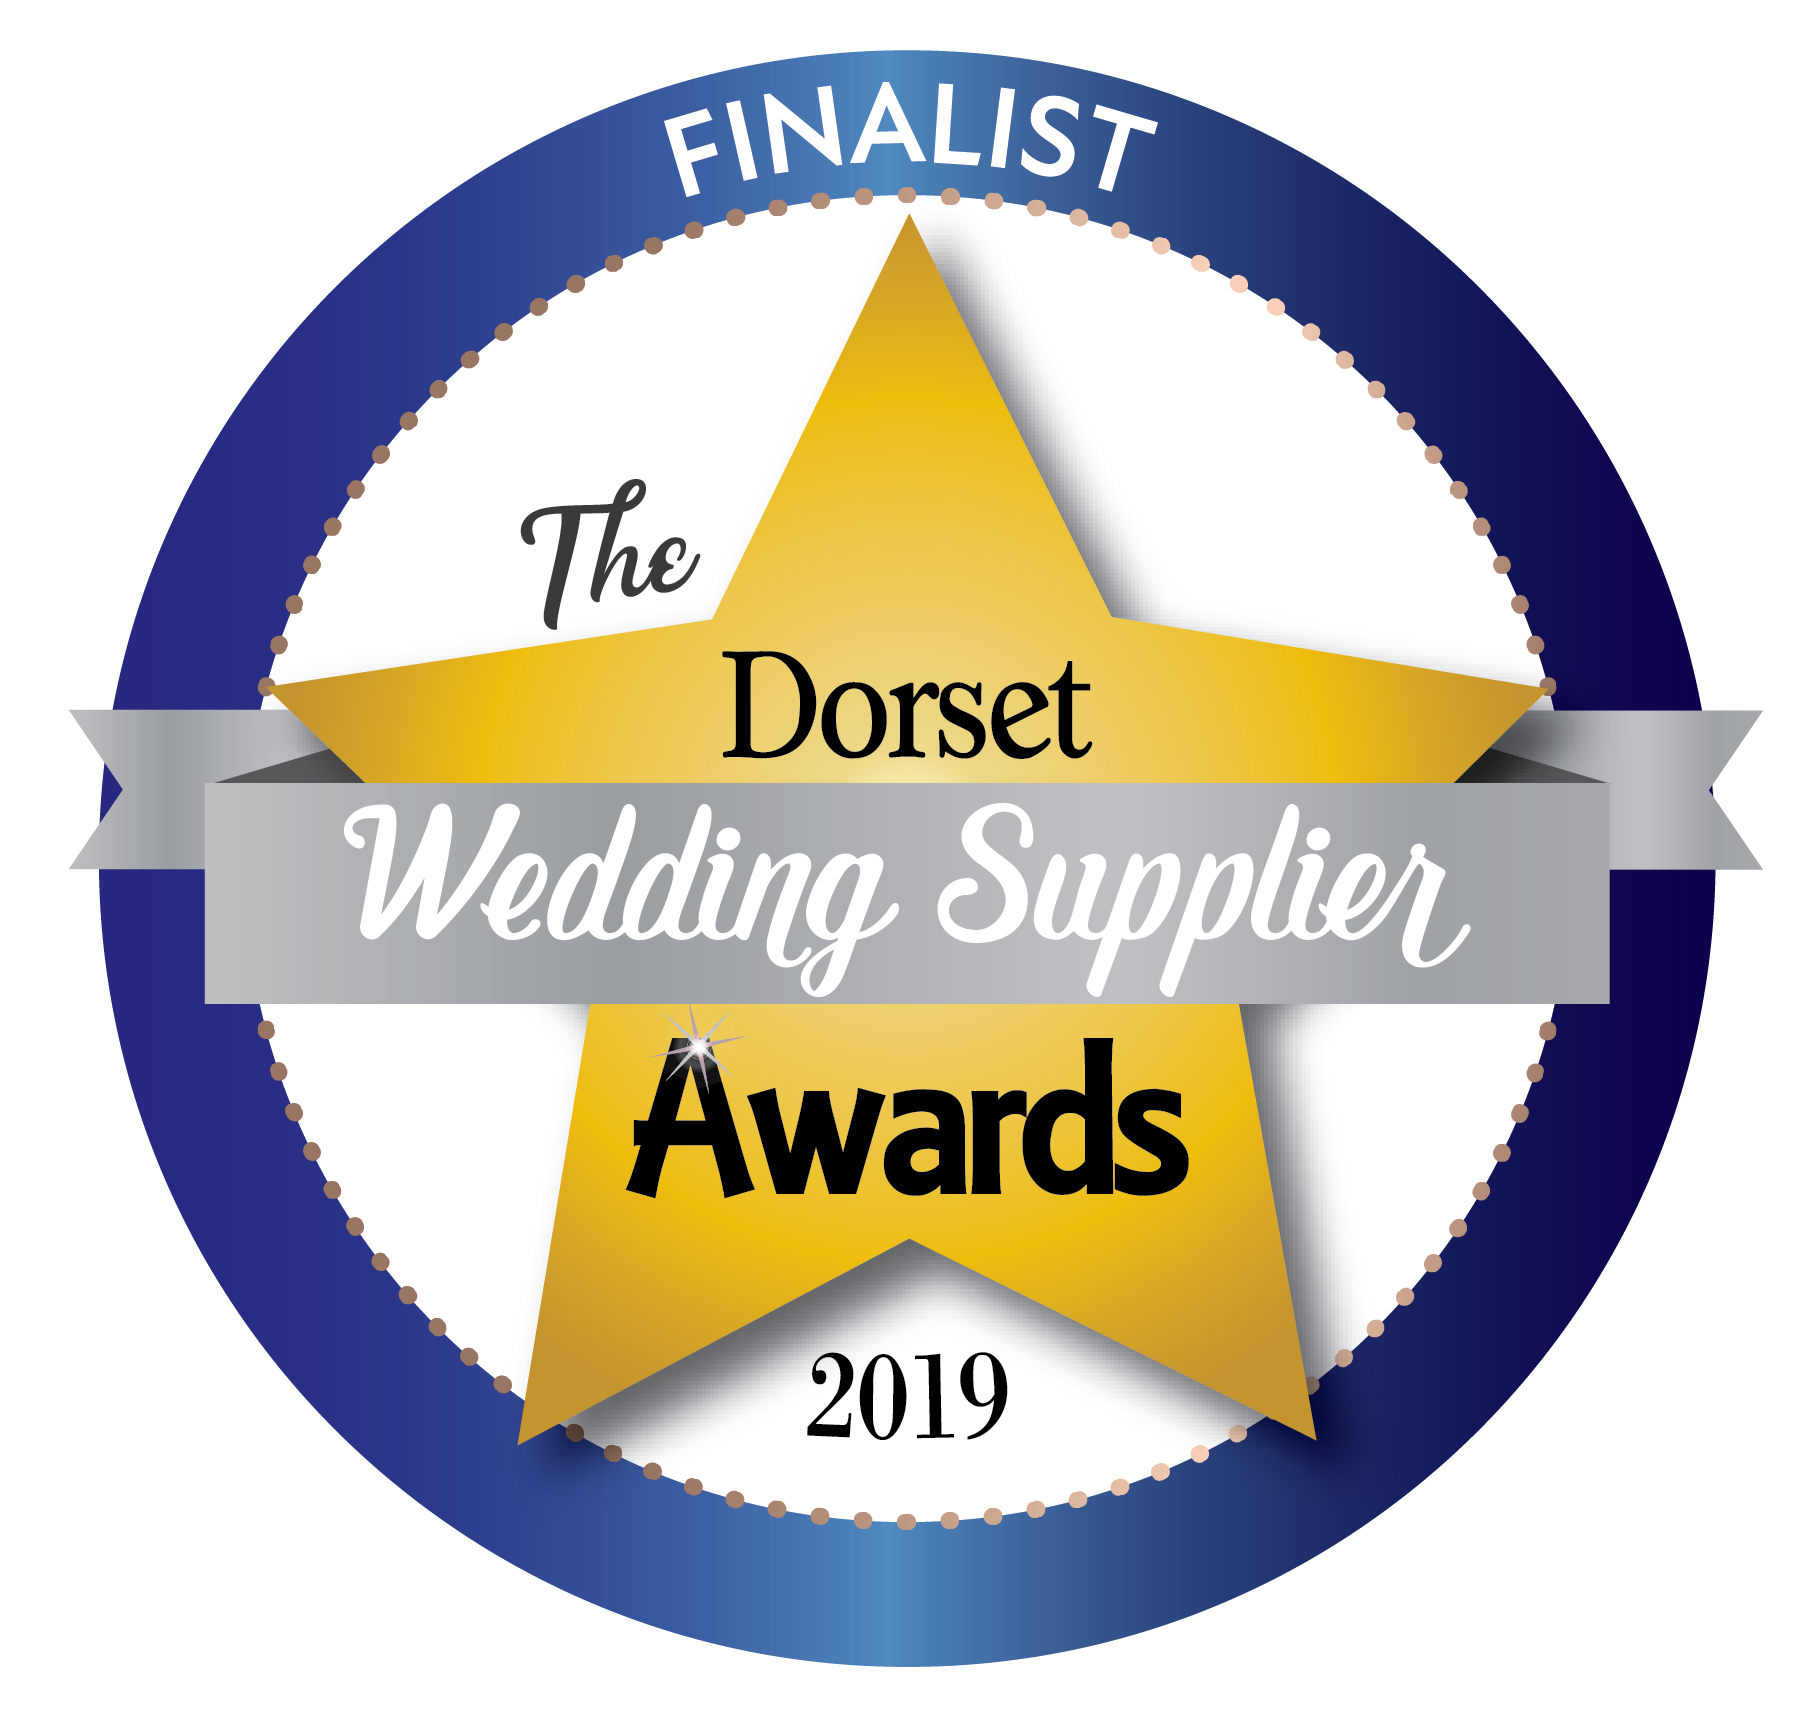 Dorset and hants 2019 - FINLAIST-02.png